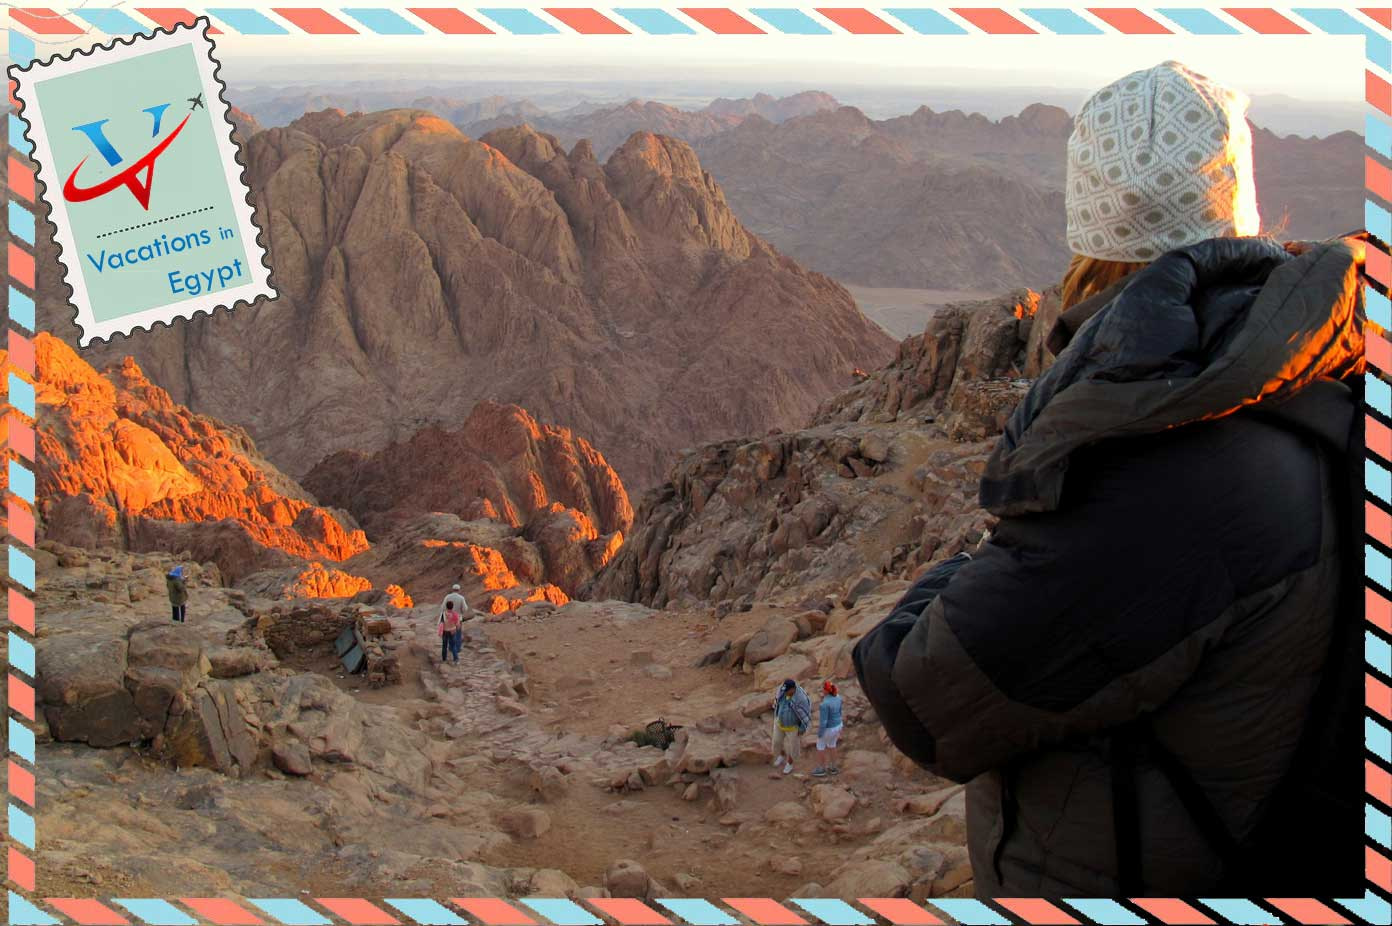 Tour from Cairo to St Catherine's monastery